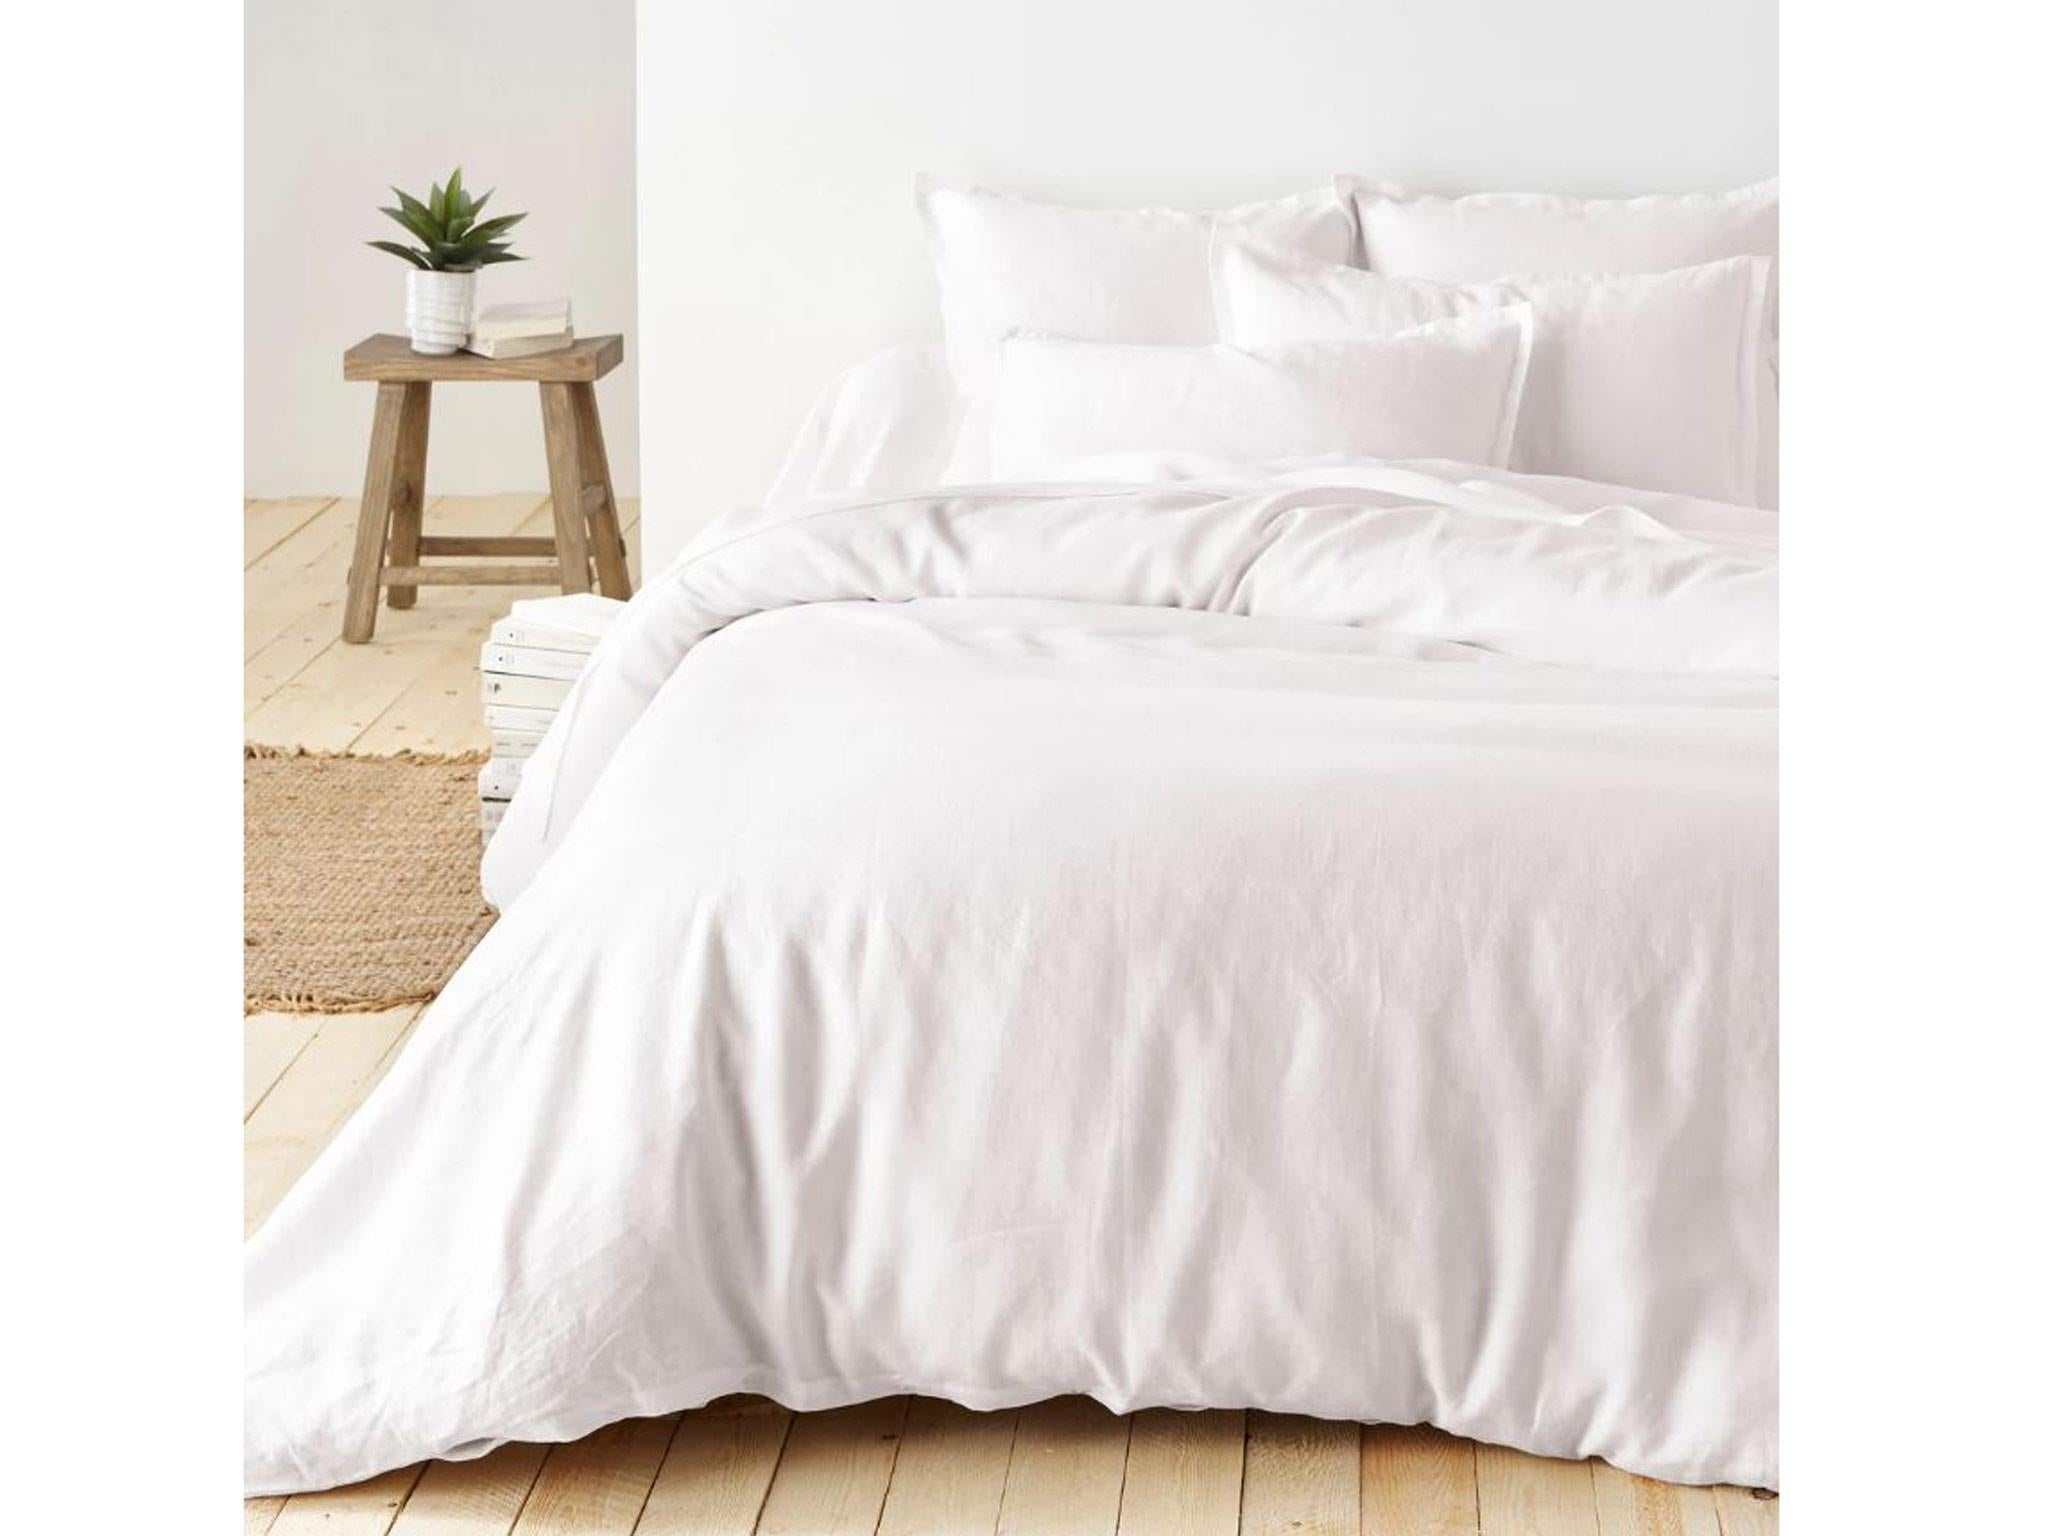 11 Best Linen Bedding Sets The Independent To Find Deal How Fold Fitted Sheets Diagram Right Now Set Includes Pillowcase Sheet Or Flat Duvet Cover Machine Wash 60